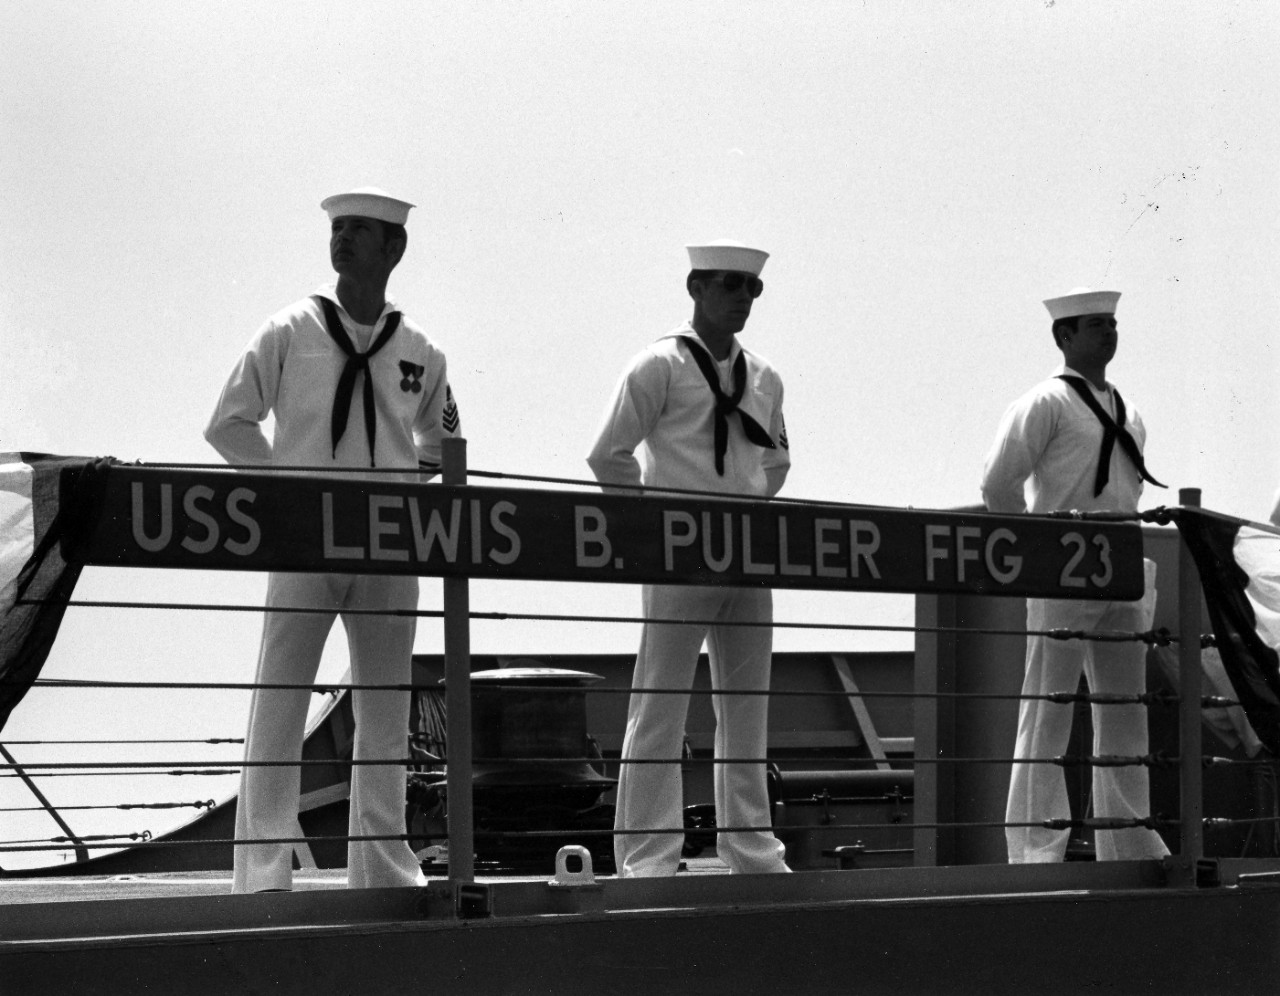 Manning the rails aboard USS Lewis B. Puller (FFG-23).